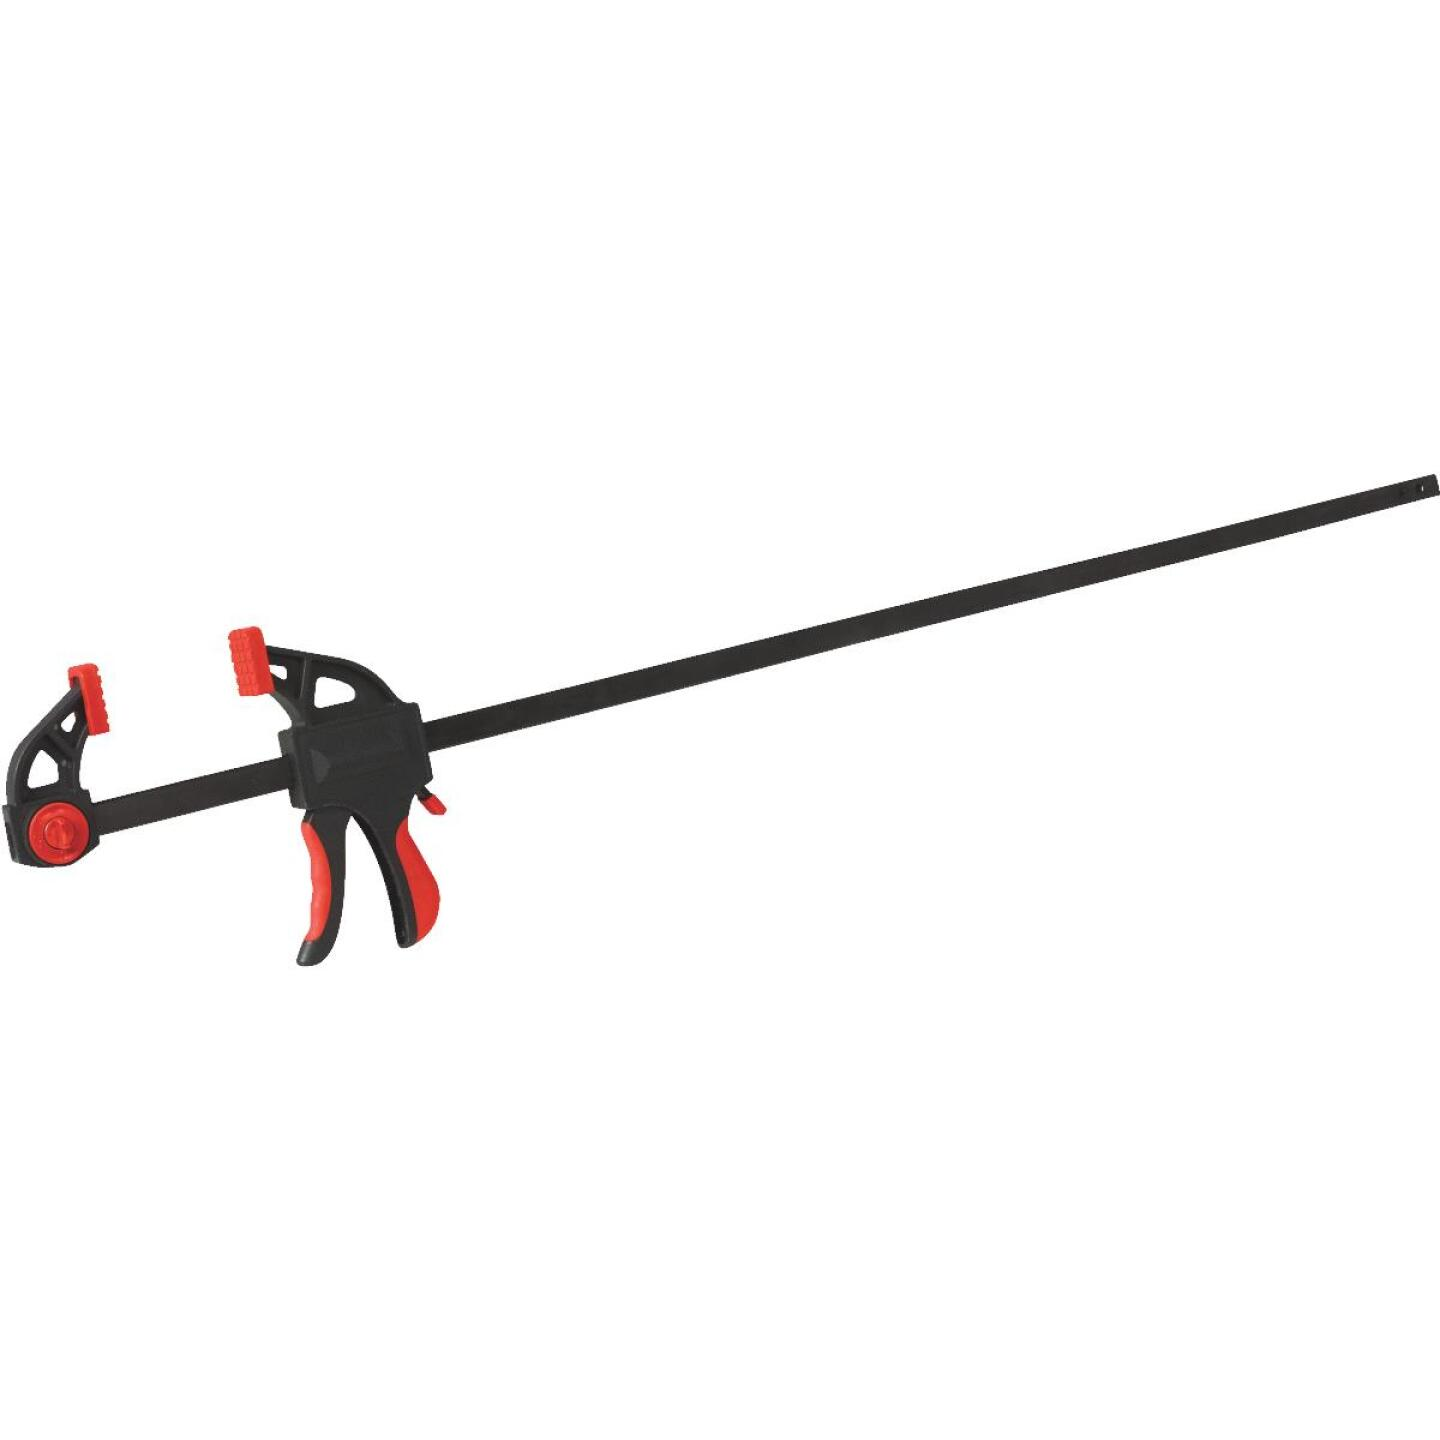 Do it Pistol Grip 36 In. x 2-1/2 In. One-Hand Bar Clamp and Spreader Image 1